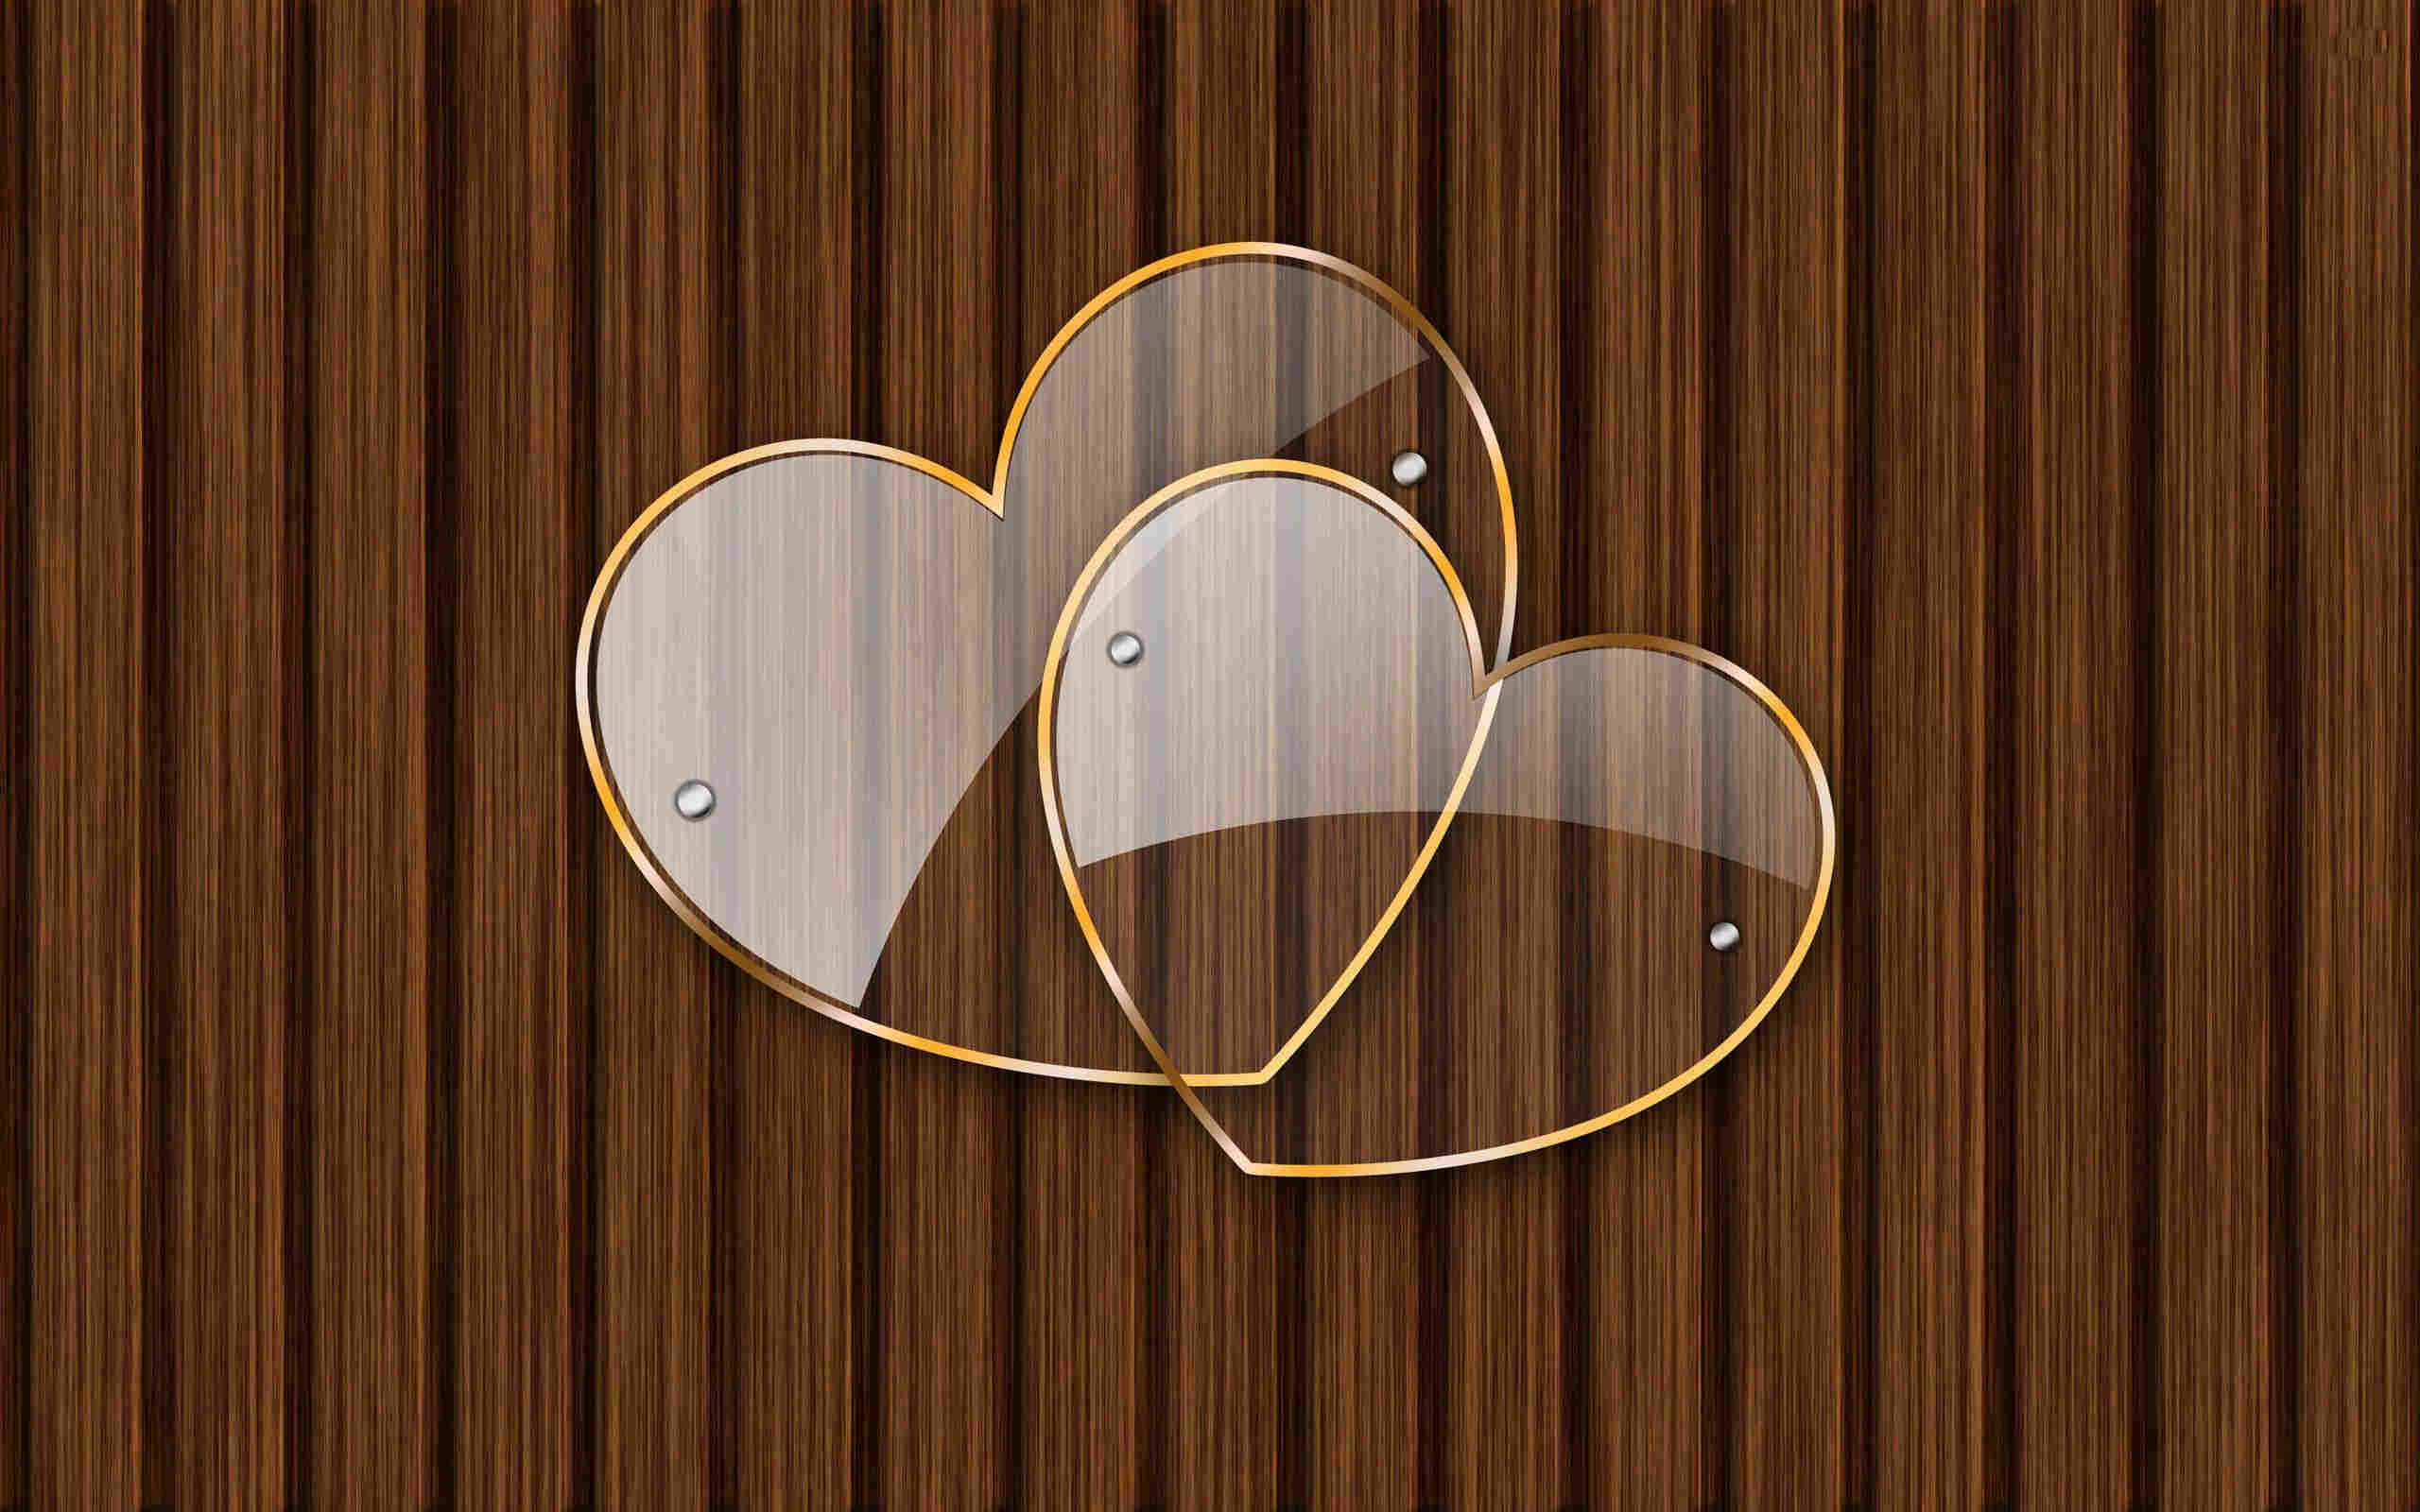 Transparent Heart Wallpaper